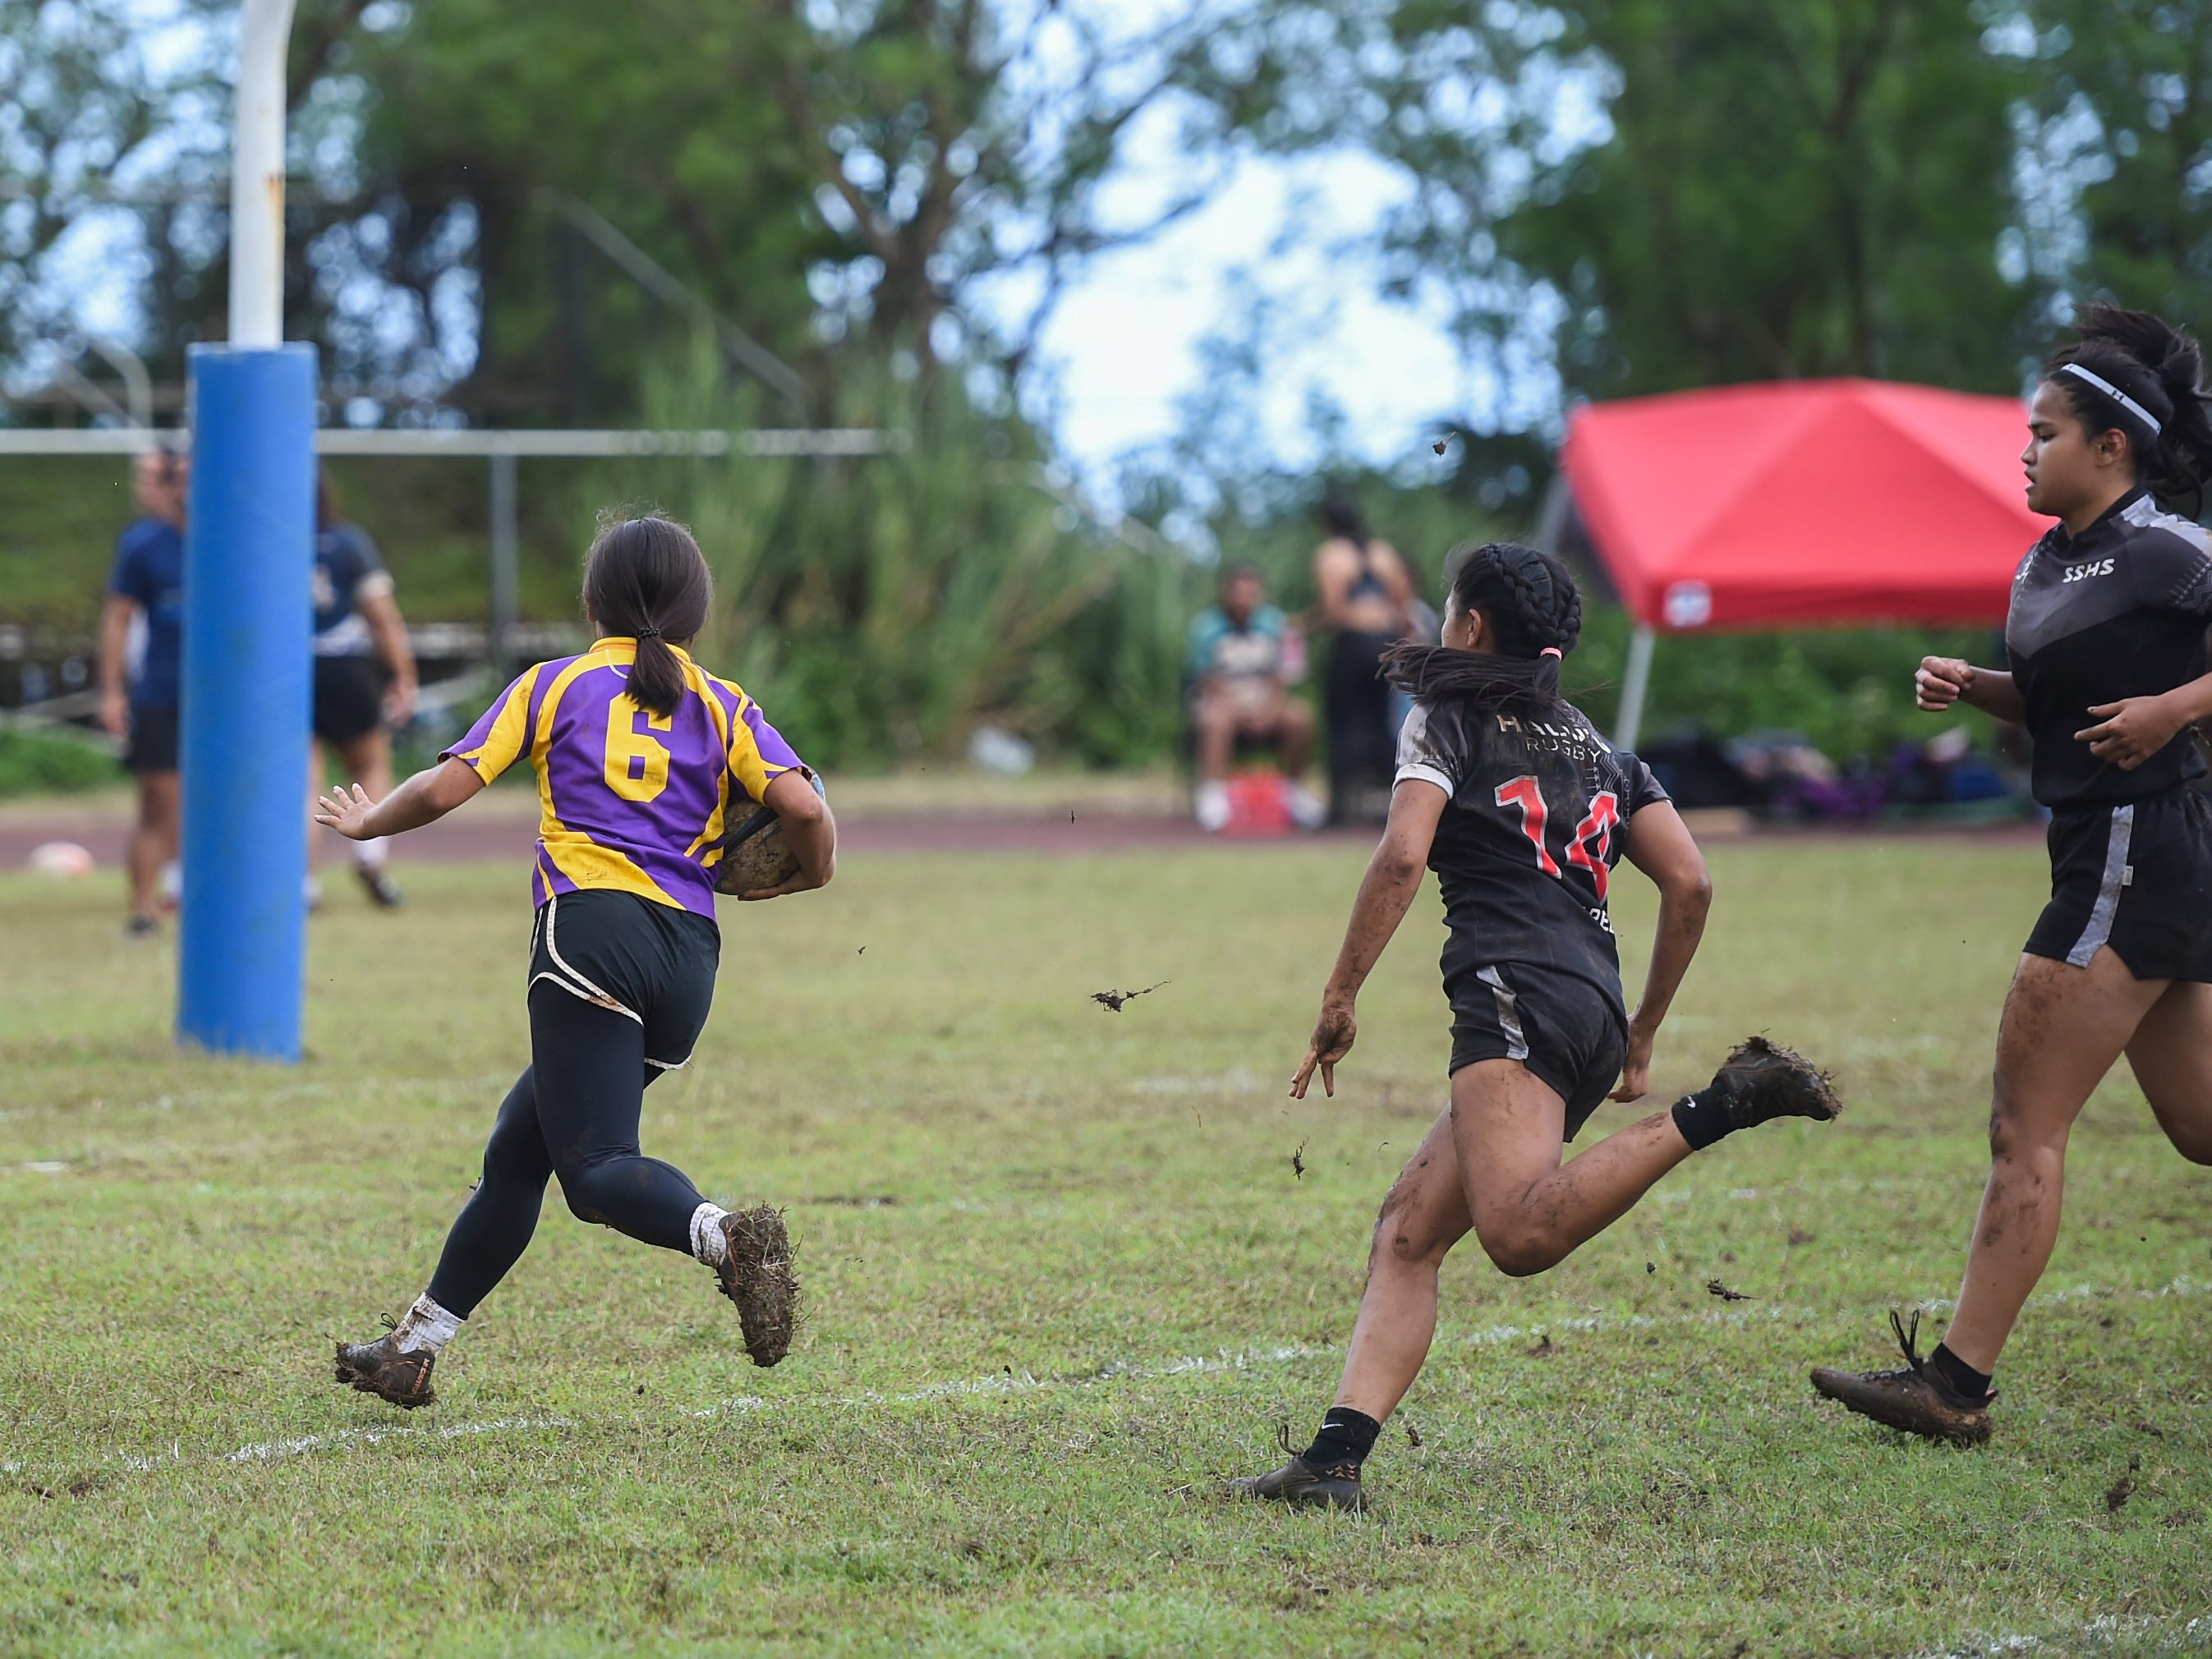 Aveah Garrido (6) sprints toward the goal line against the Simon Sanchez Sharks for their IIAAG Girls' Rugby match at the Southern High School Field, Feb. 9, 2019.